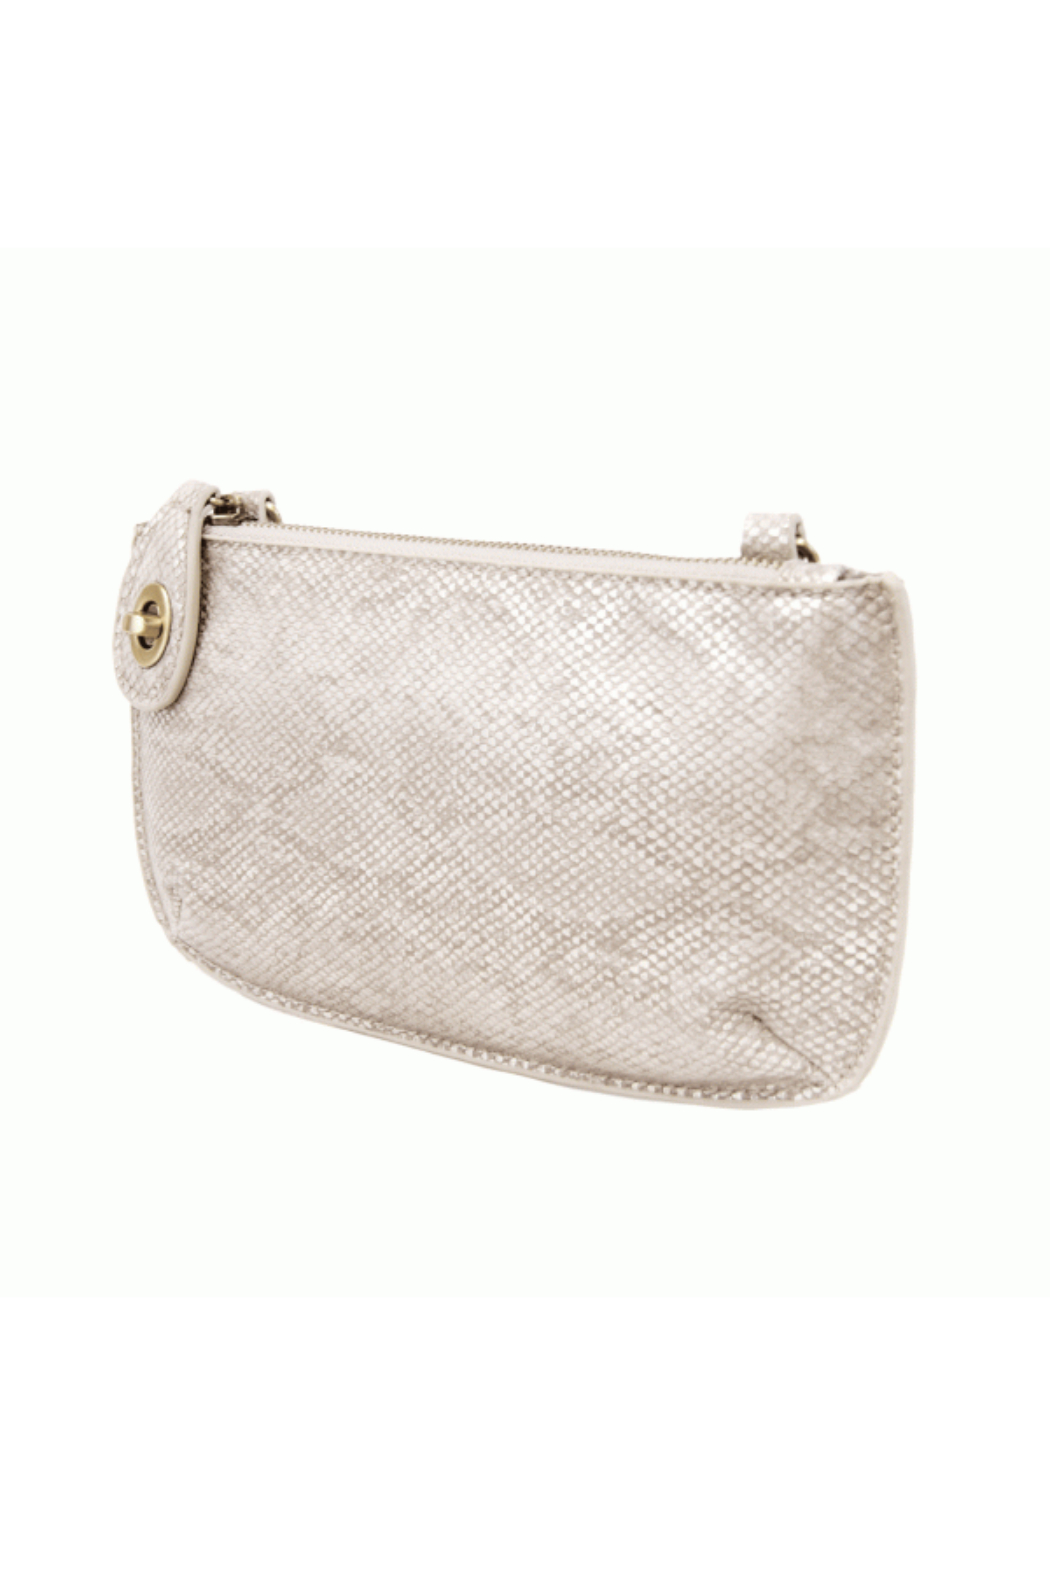 Joy Accessories Pearly Python Crossbody Wristlet Clutch - Front Full Image